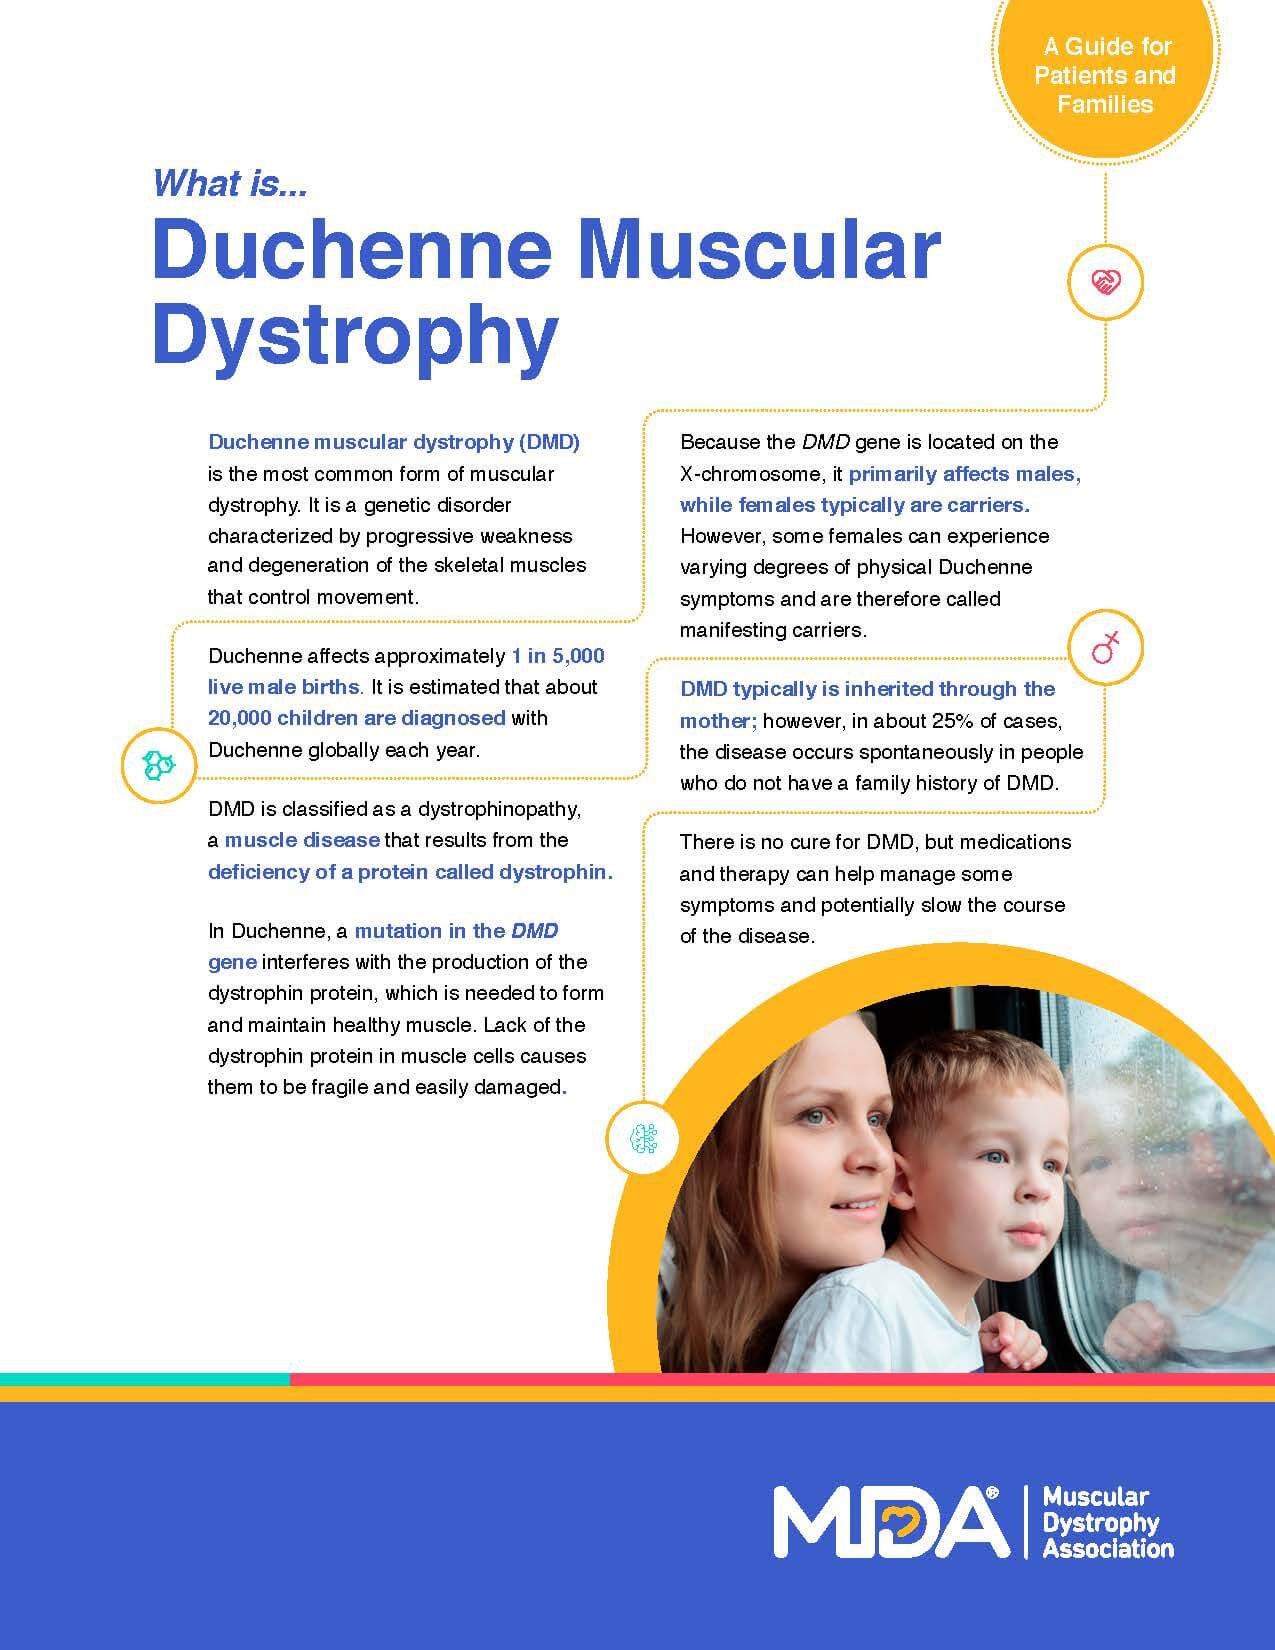 Duchenne Muscular Dystrophy Symptoms Toddlers Mda Releases New Dmd Fact Sheet During Duchenne Muscular Dystrophy